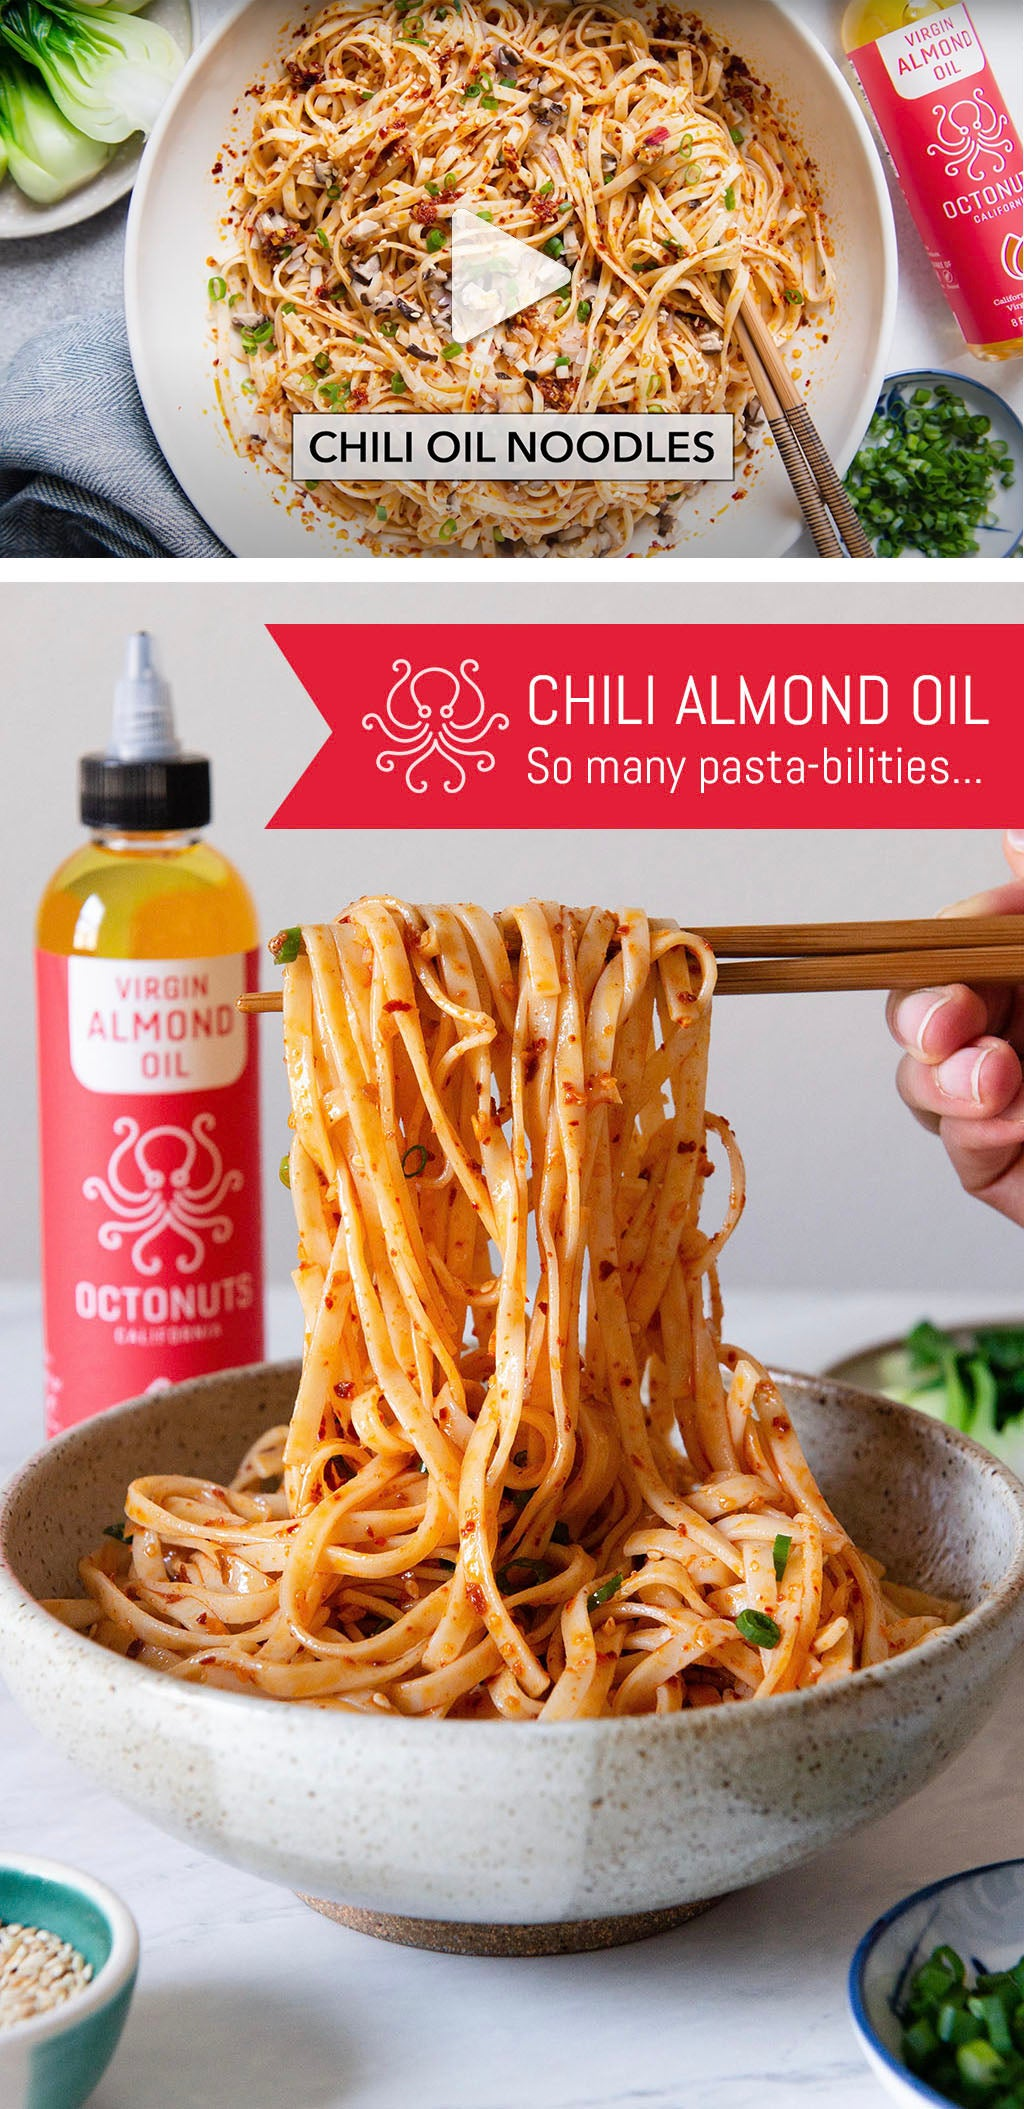 Octonuts Chili Almond Oil Noodles Recipe